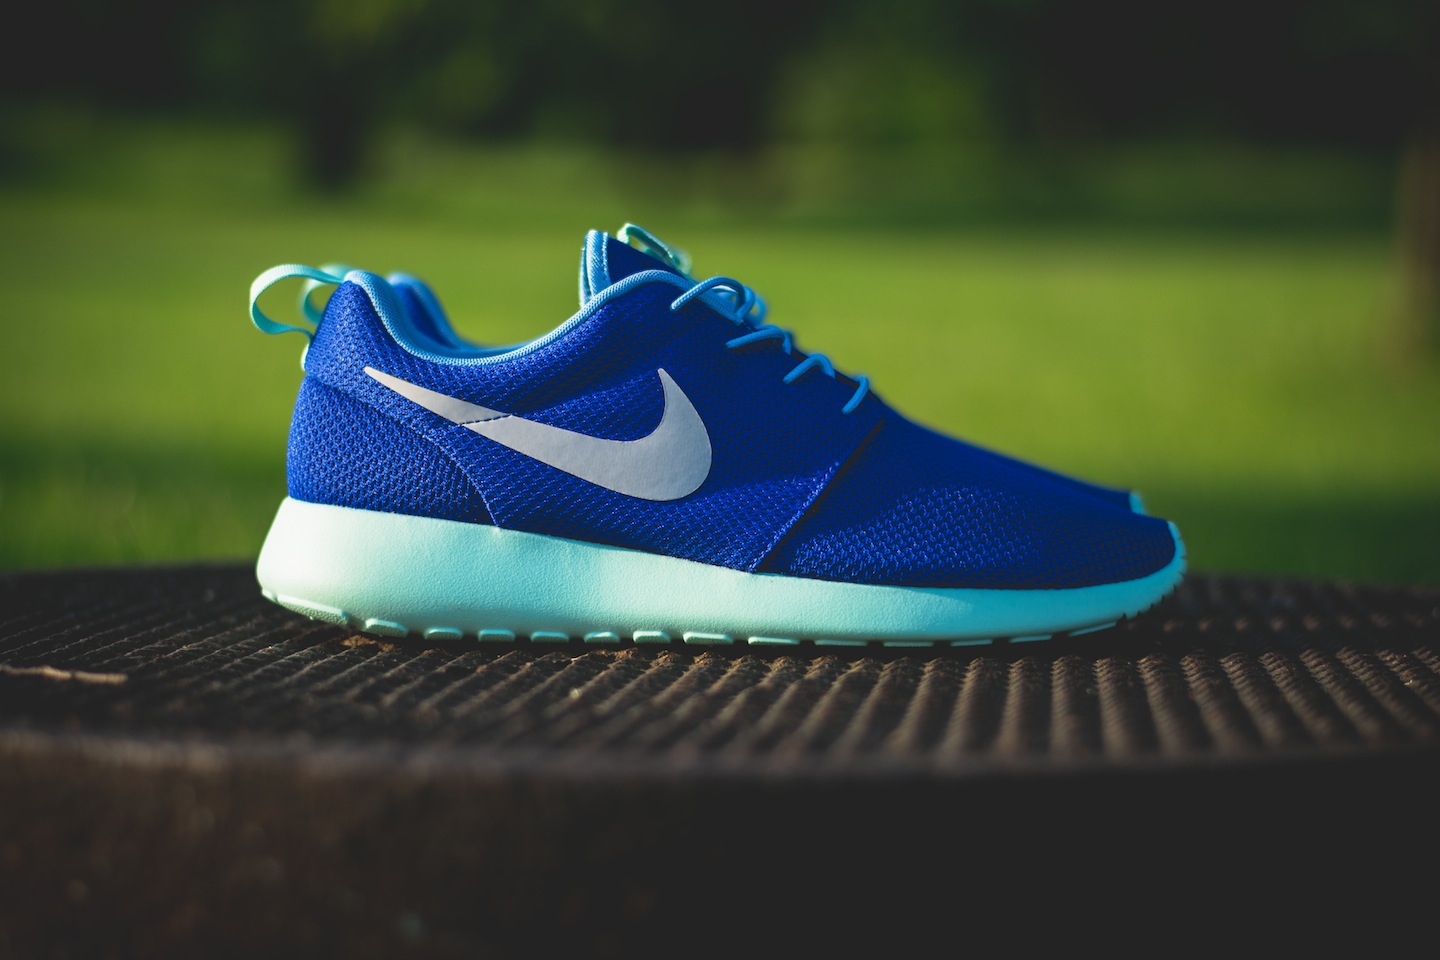 Roshe Run Hommes - Polo Ralph Lauren Chaussures Réduction Ralph Lauren Femmes Chaussures Réduction Coupon